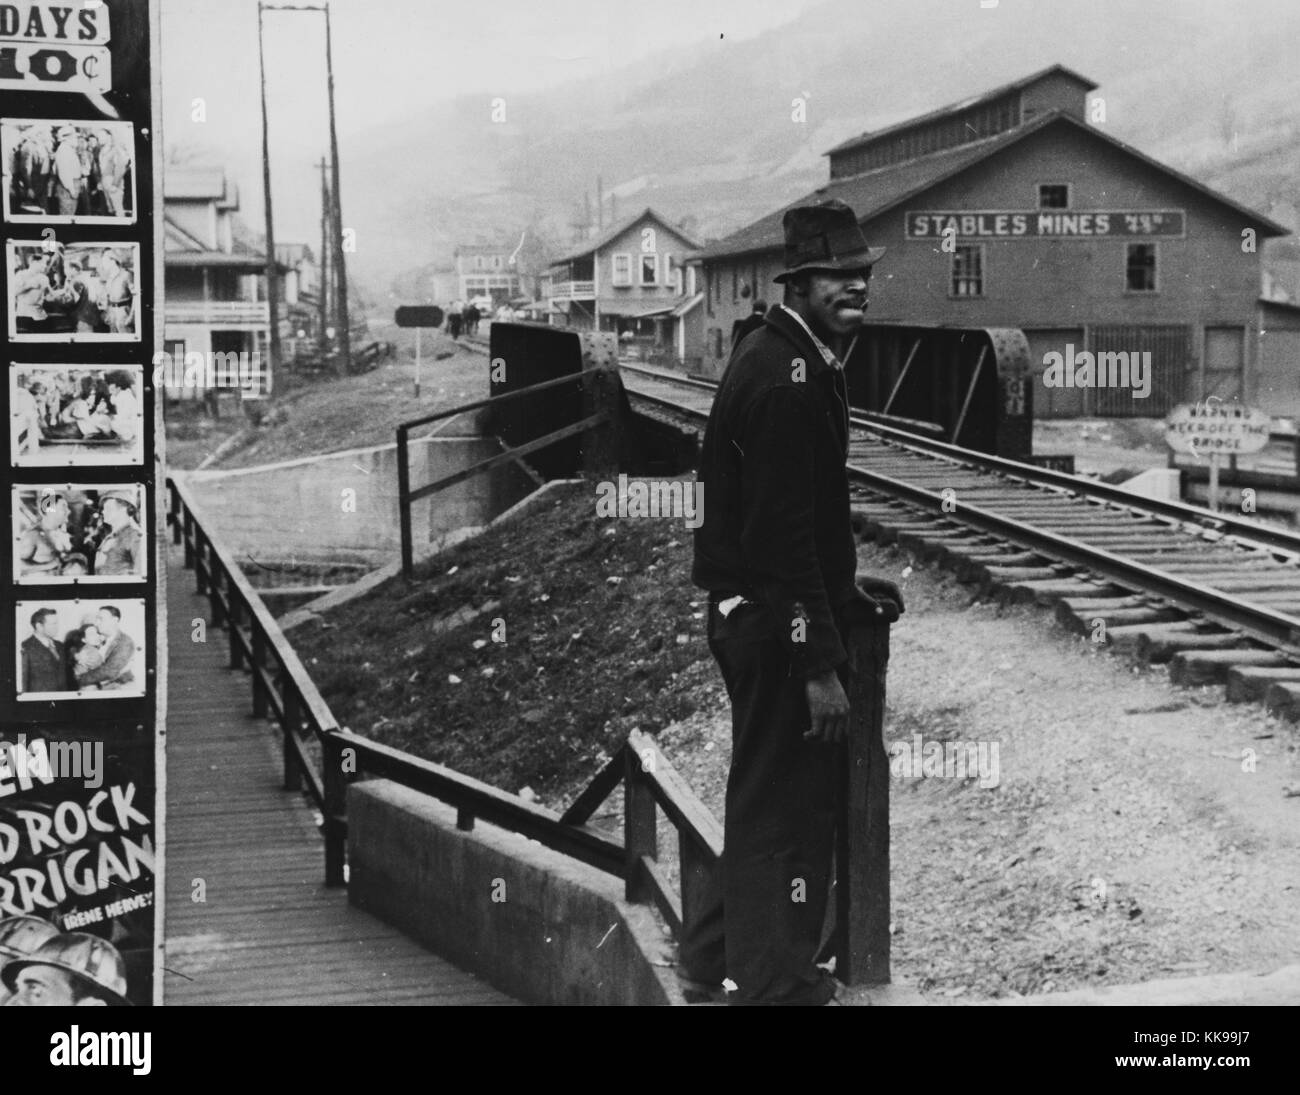 Black and white photograph of an african american man wearing a jacket and hat standing at a train stop buildings can be seen in the background omar